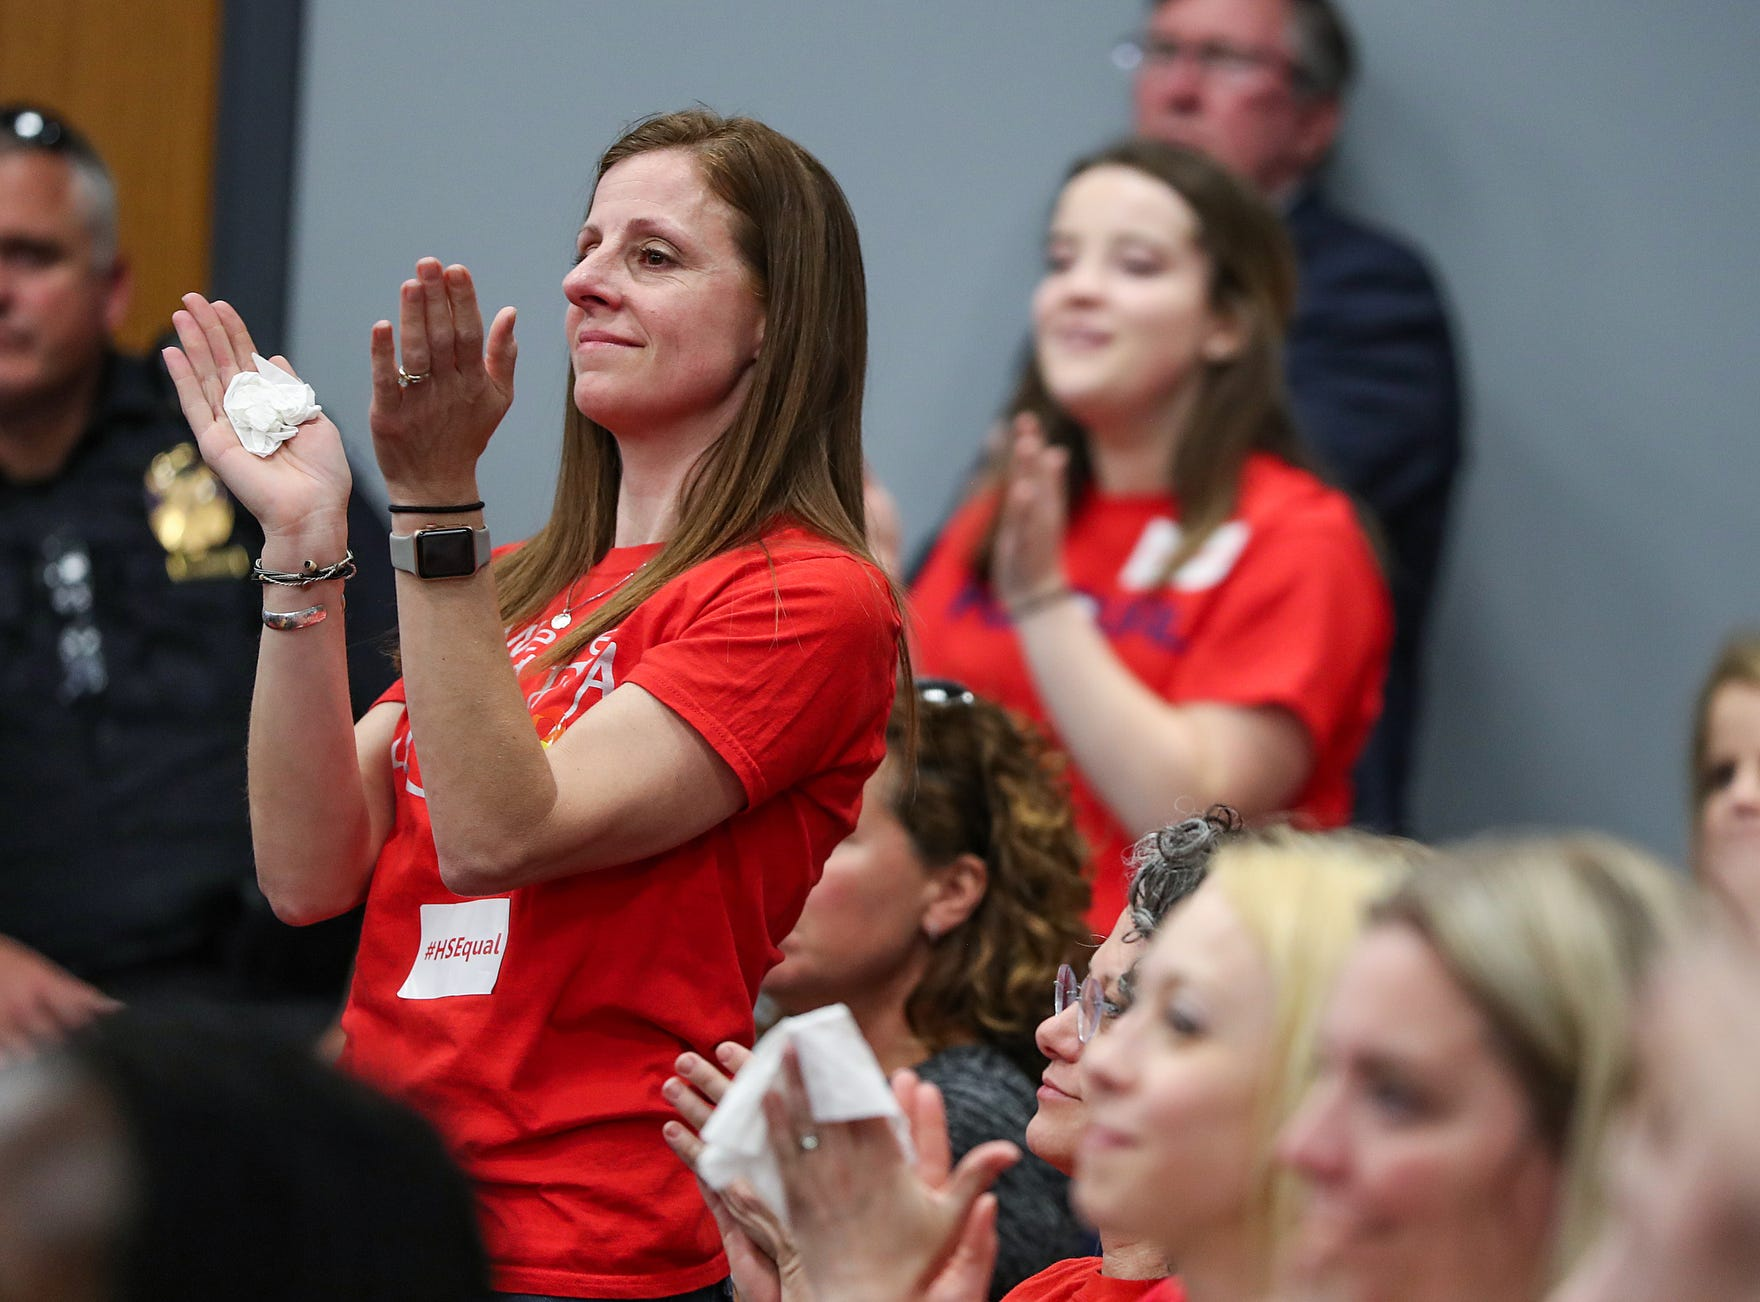 Renee Isom, a Fishers Highs School librarian, claps for students as they share personal stories and statements during the Hamilton Southeastern Schools board meeting at Cumberland Road Elementary in Fishers, Ind., Wednesday, May 8, 2019. The board voted 5-2 to adopt an anti-discrimination policy including language specifically prohibiting discrimination and harassment based on gender identity and sexual orientation.